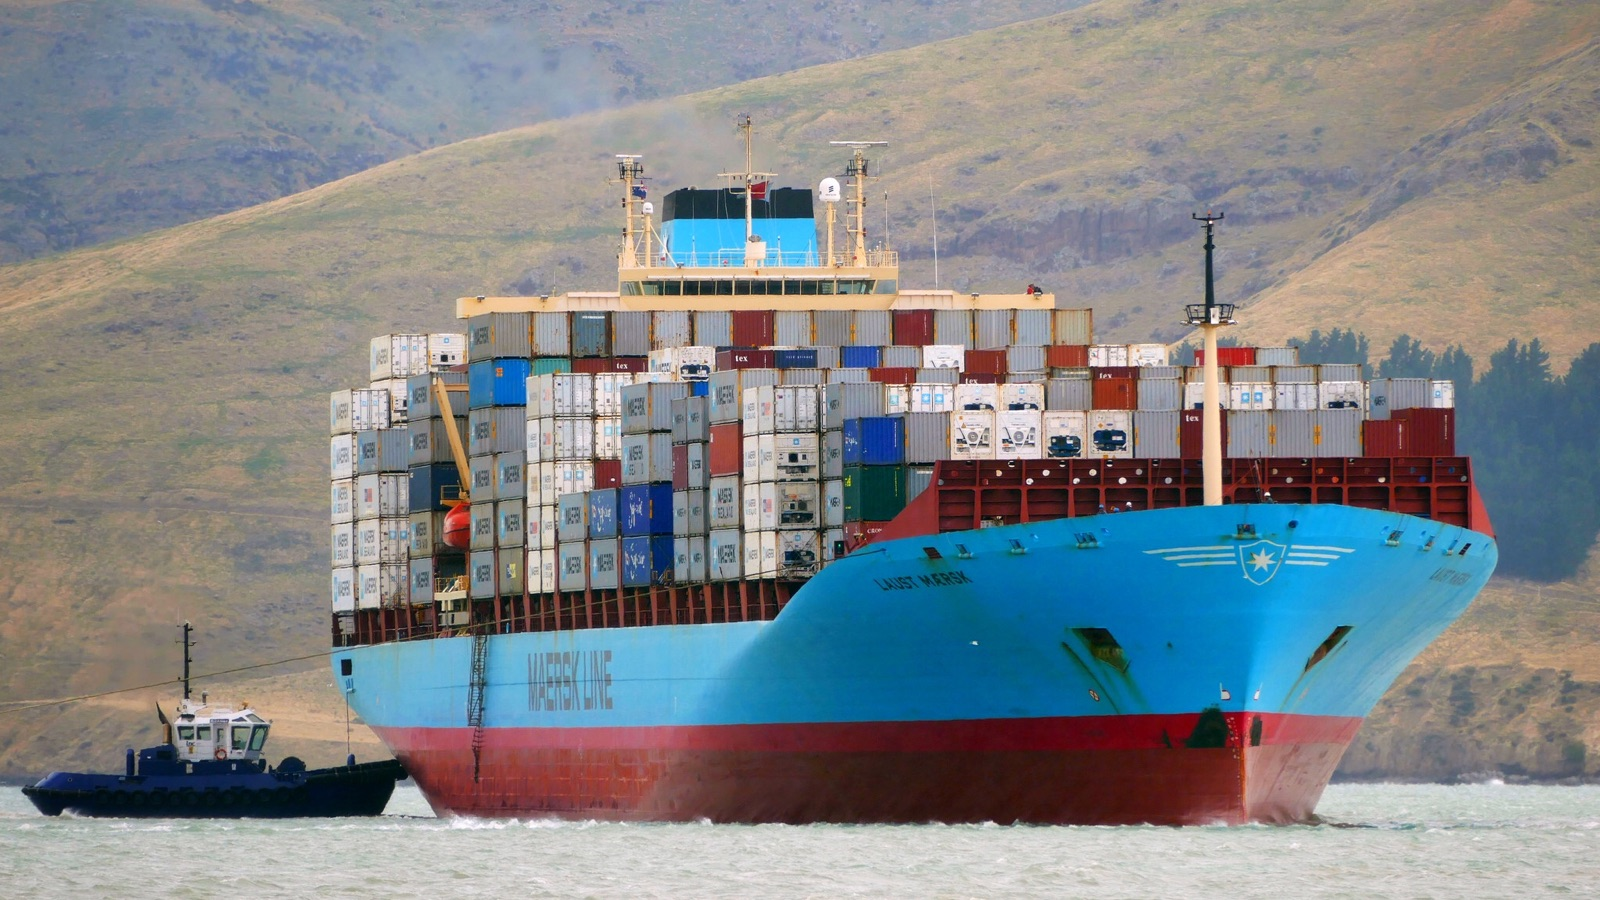 Maersk container ship pushed by a towboat